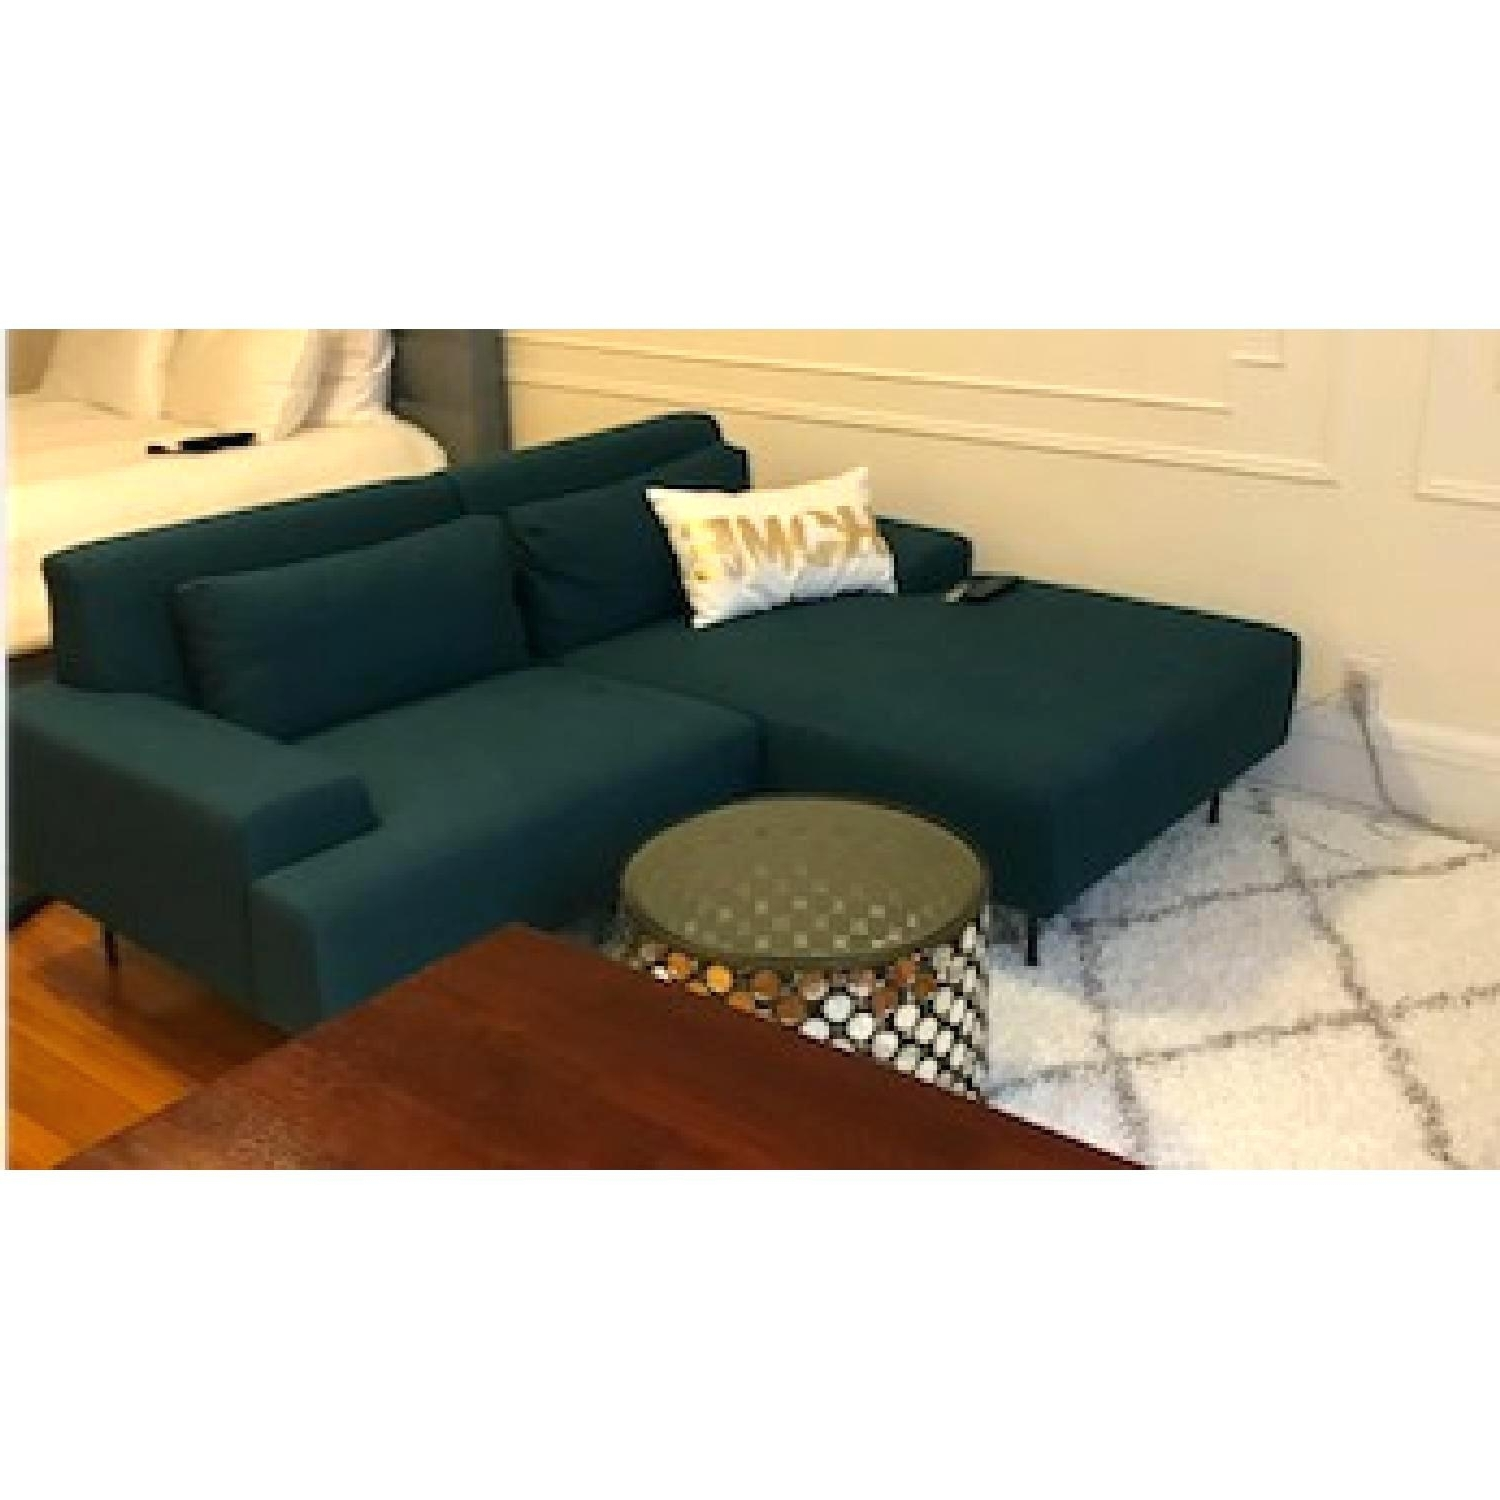 Recent 2 Piece Chaise Sectional Sofa Big Lots Sofas Bergen For Big Lots Chaises (View 13 of 15)